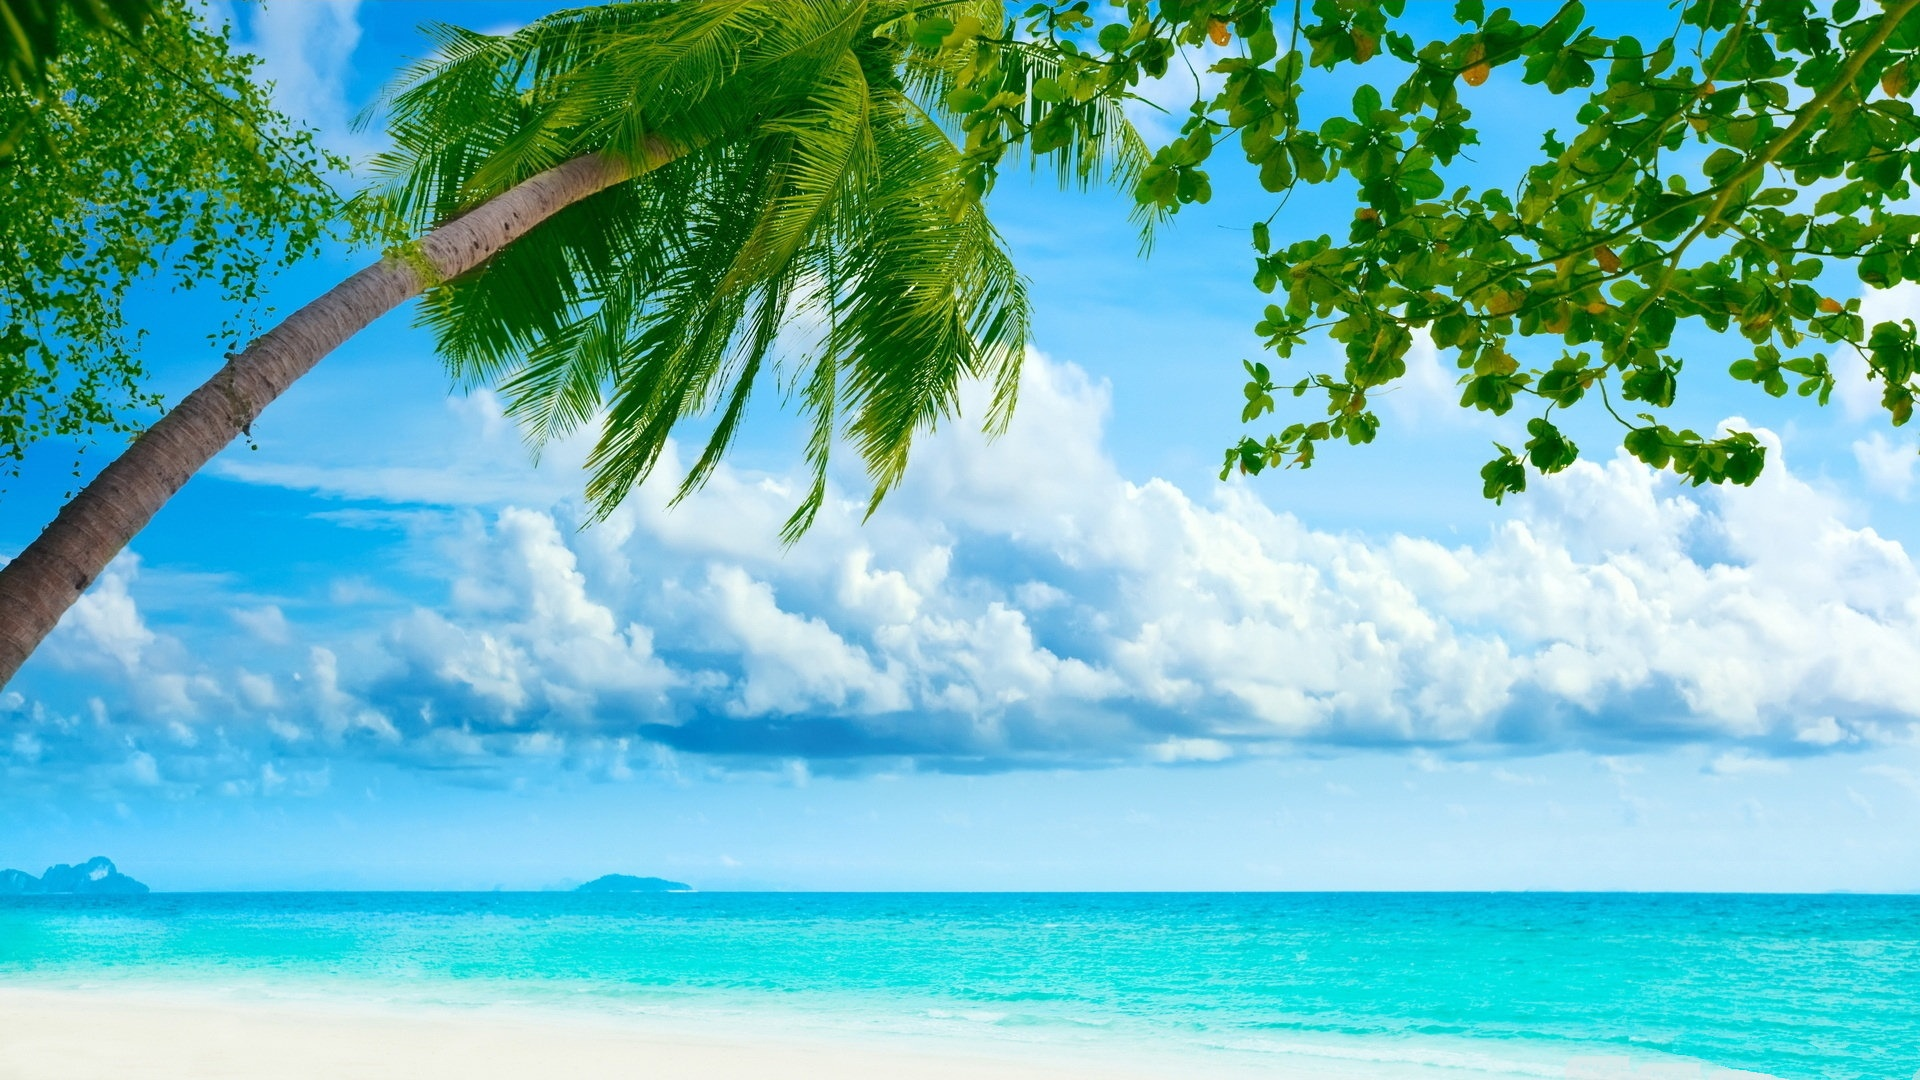 Tropical Island Desktop Wallpaper   1920x1080 1920x1080